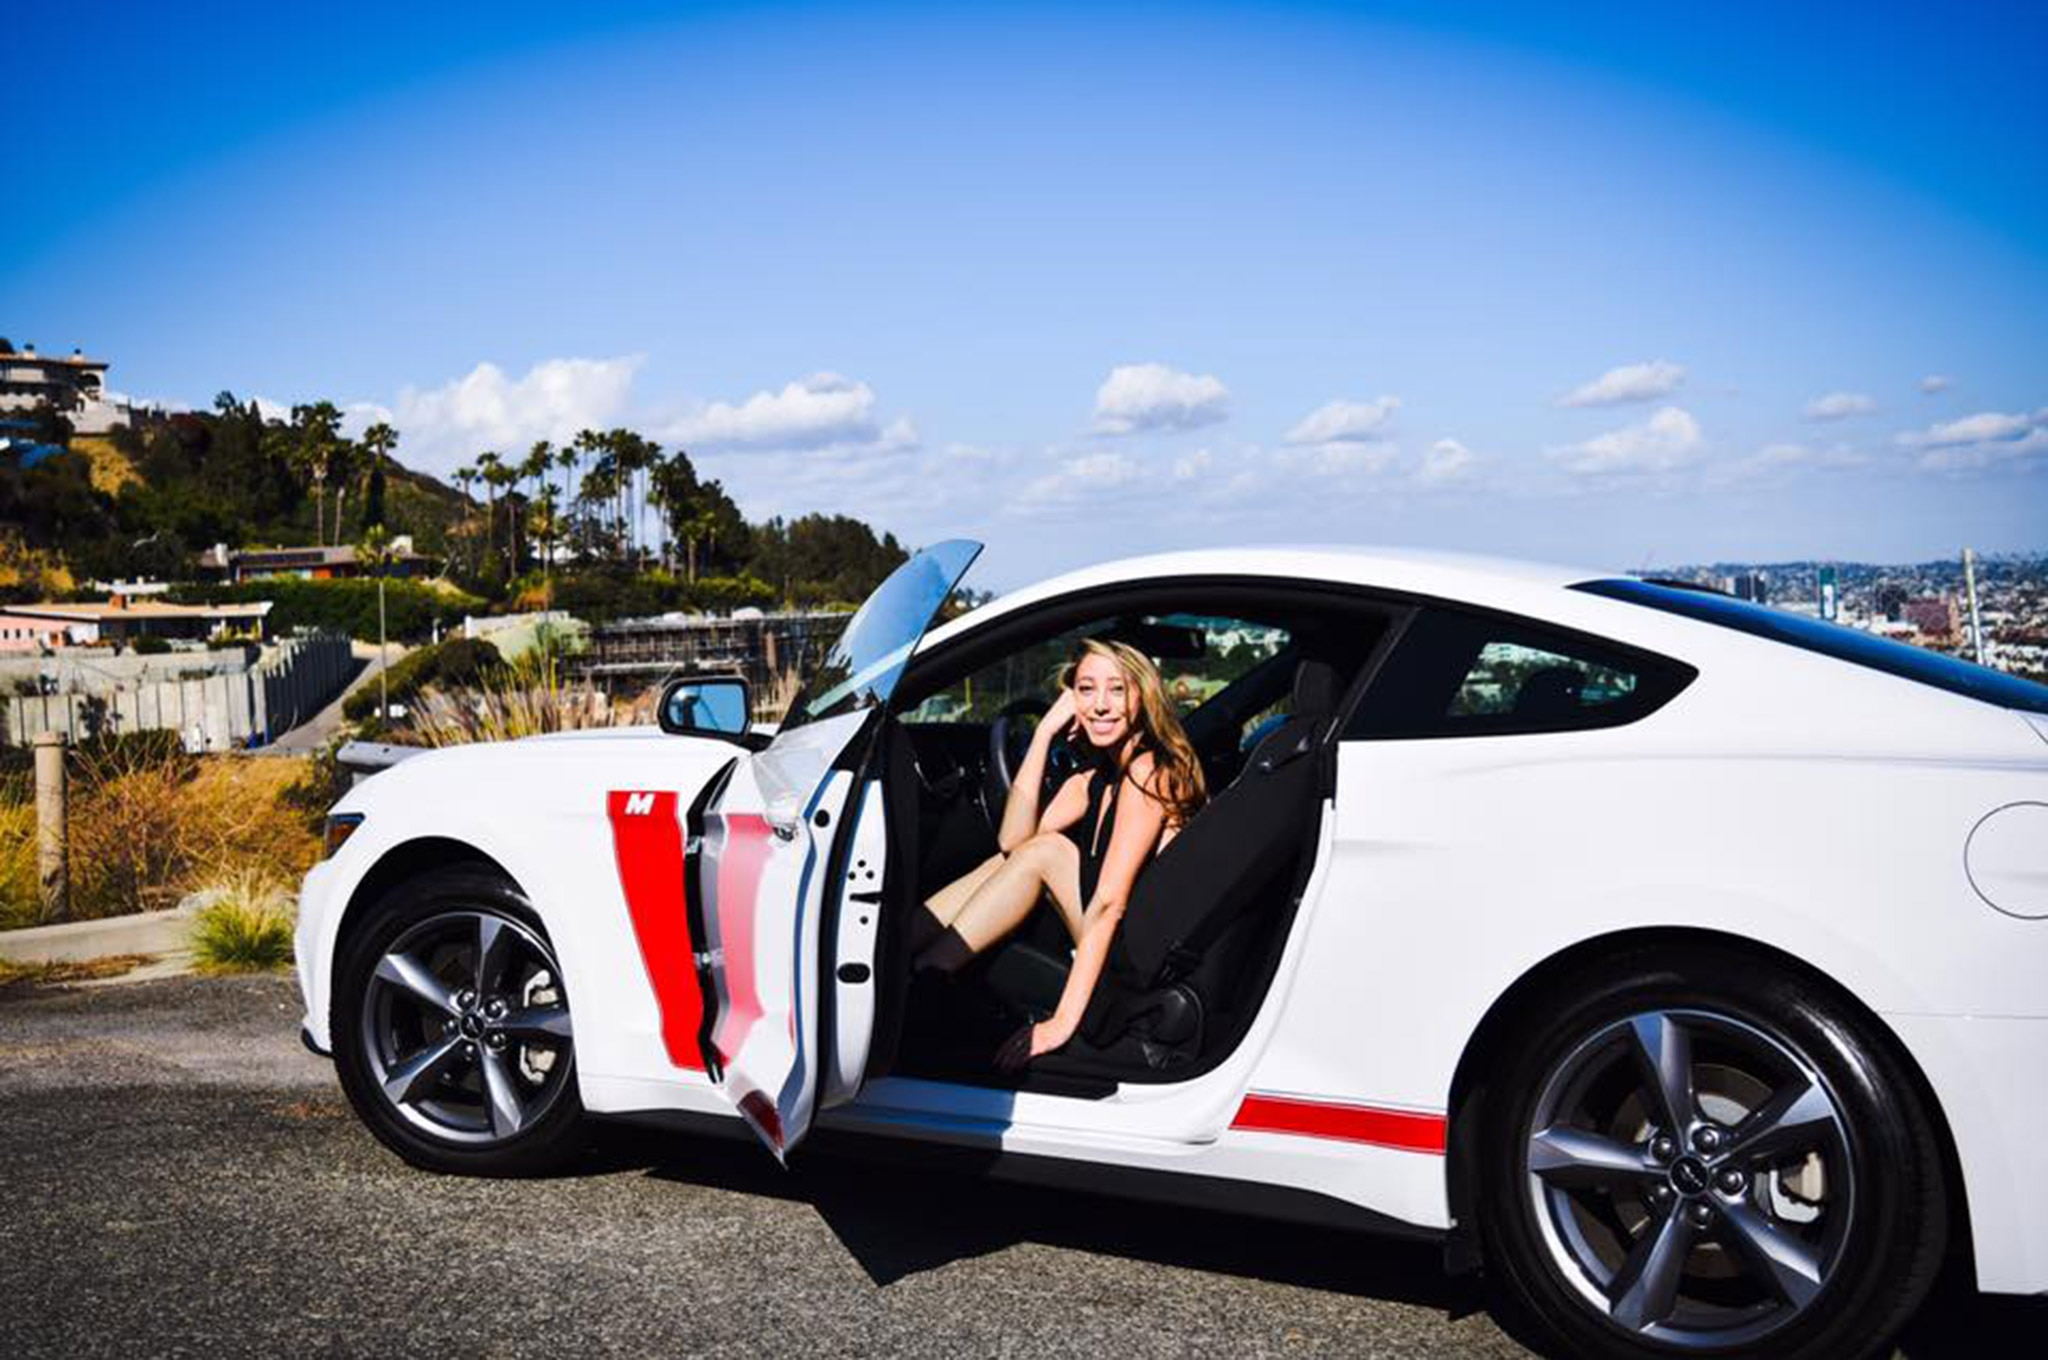 2015 Ford Mustang Mimi Estrada White Red Stripes 002